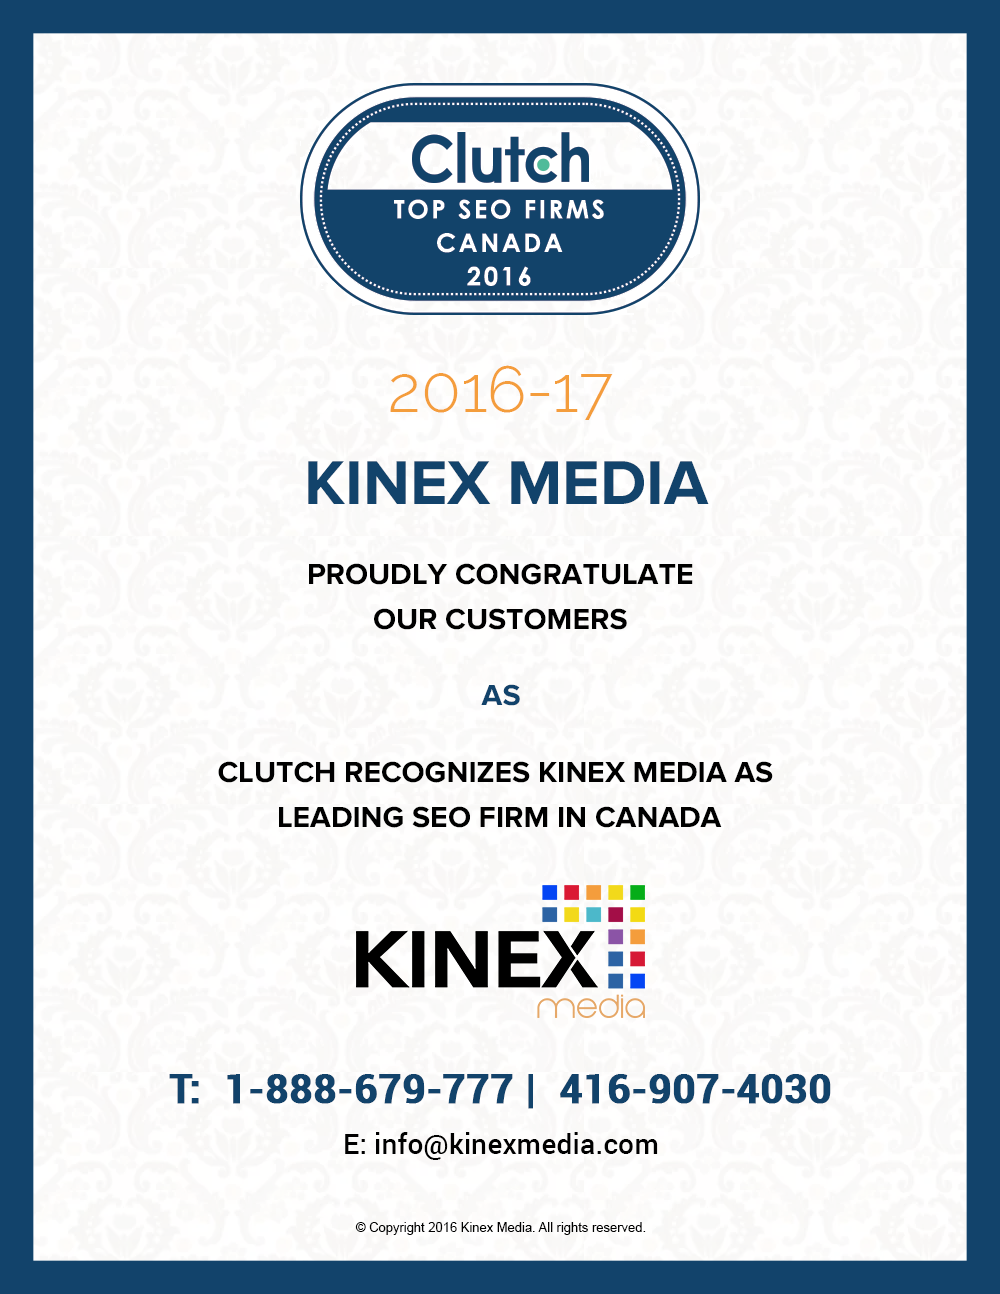 Kinex Media won Clutch award for top SEO firm 2016